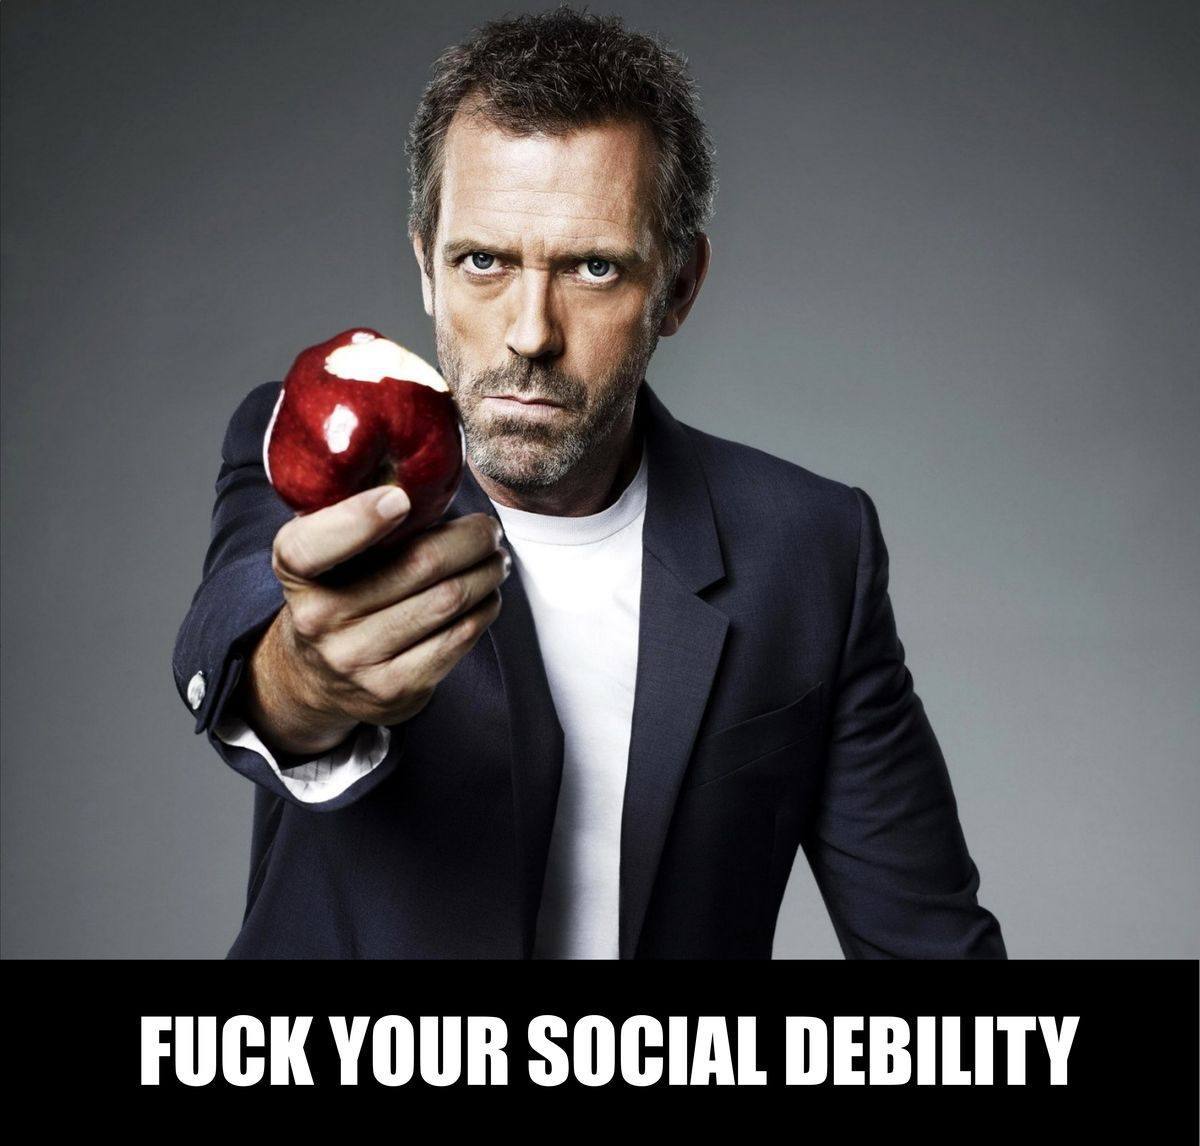 <h1>THINKING IN STYLE: Dr. House</h1>